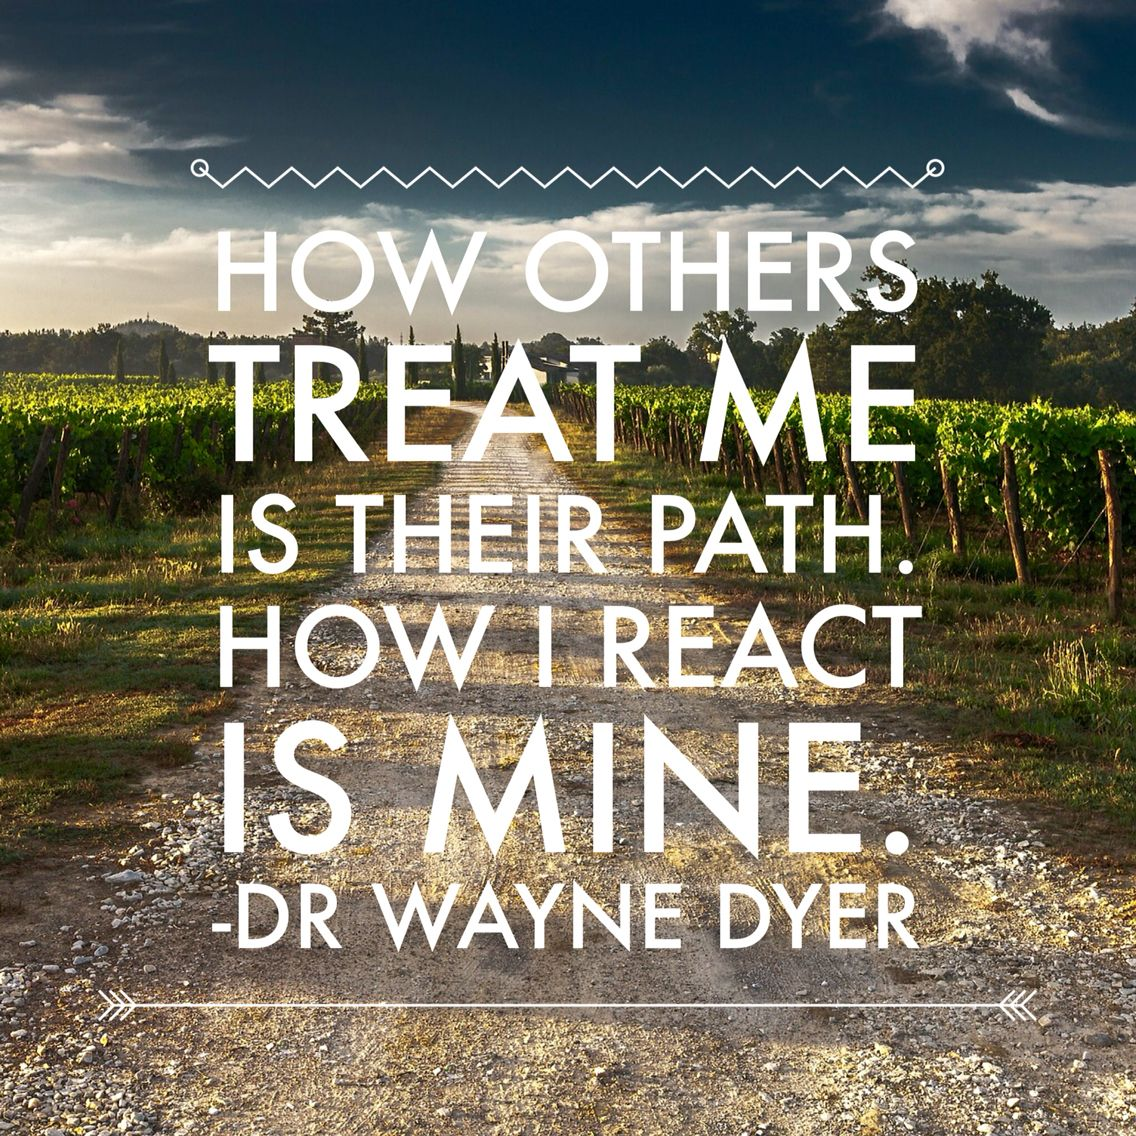 Bildergebnis für Wayne dyer how others treat me